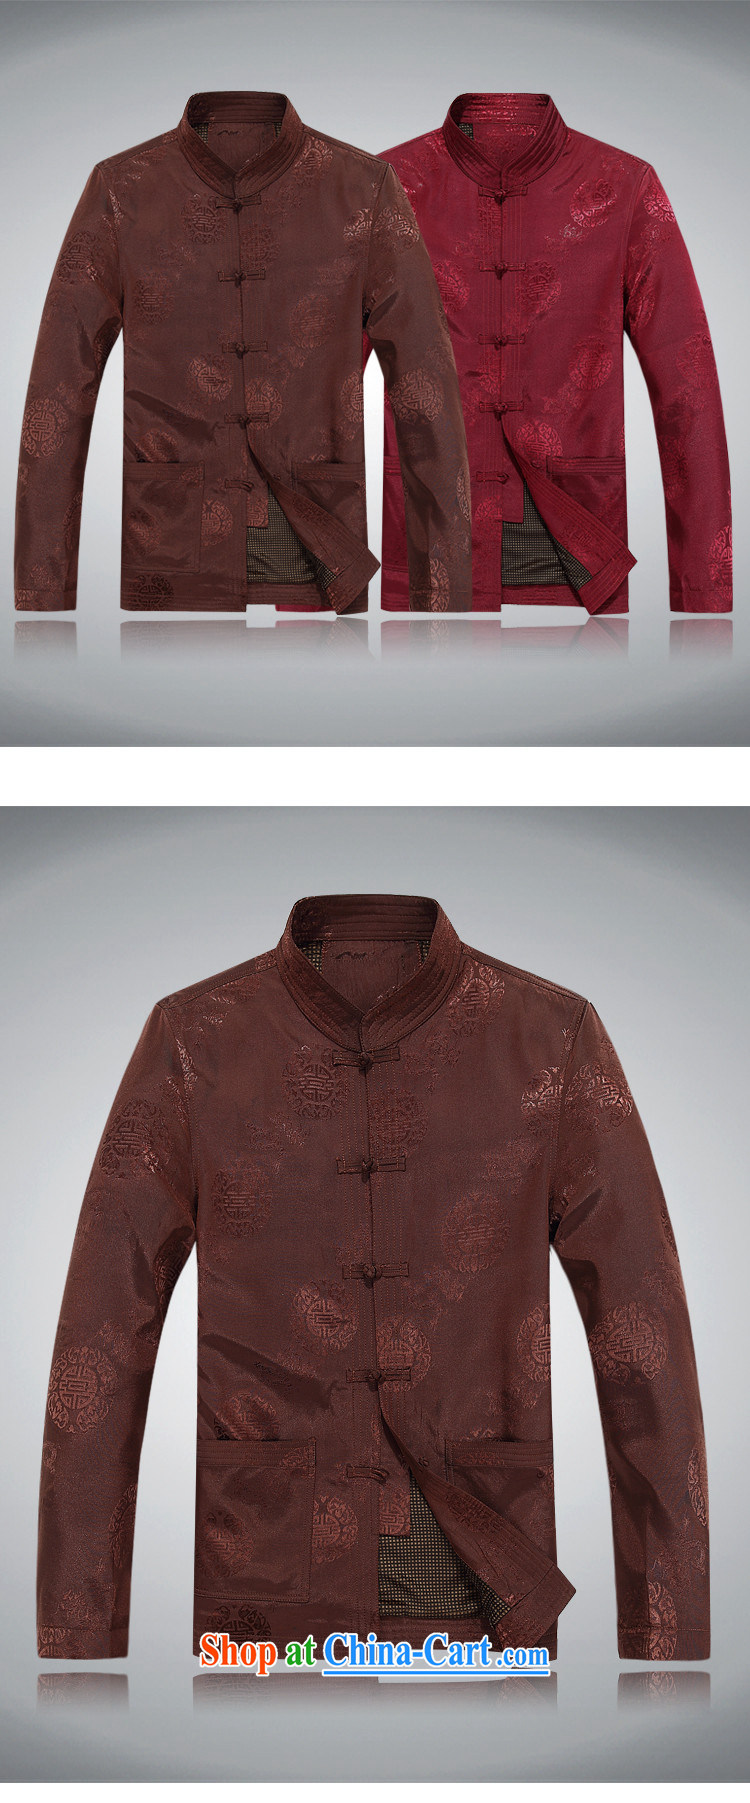 The chestnut mouse Tang fitted jacket with autumn Men/older/, Chinese men and long-sleeved T-shirt men's spring men's Tang red Shuangxi Tang fitted jacket red M/170 pictures, price, brand platters! Elections are good character, the national distribution, so why buy now enjoy more preferential! Health